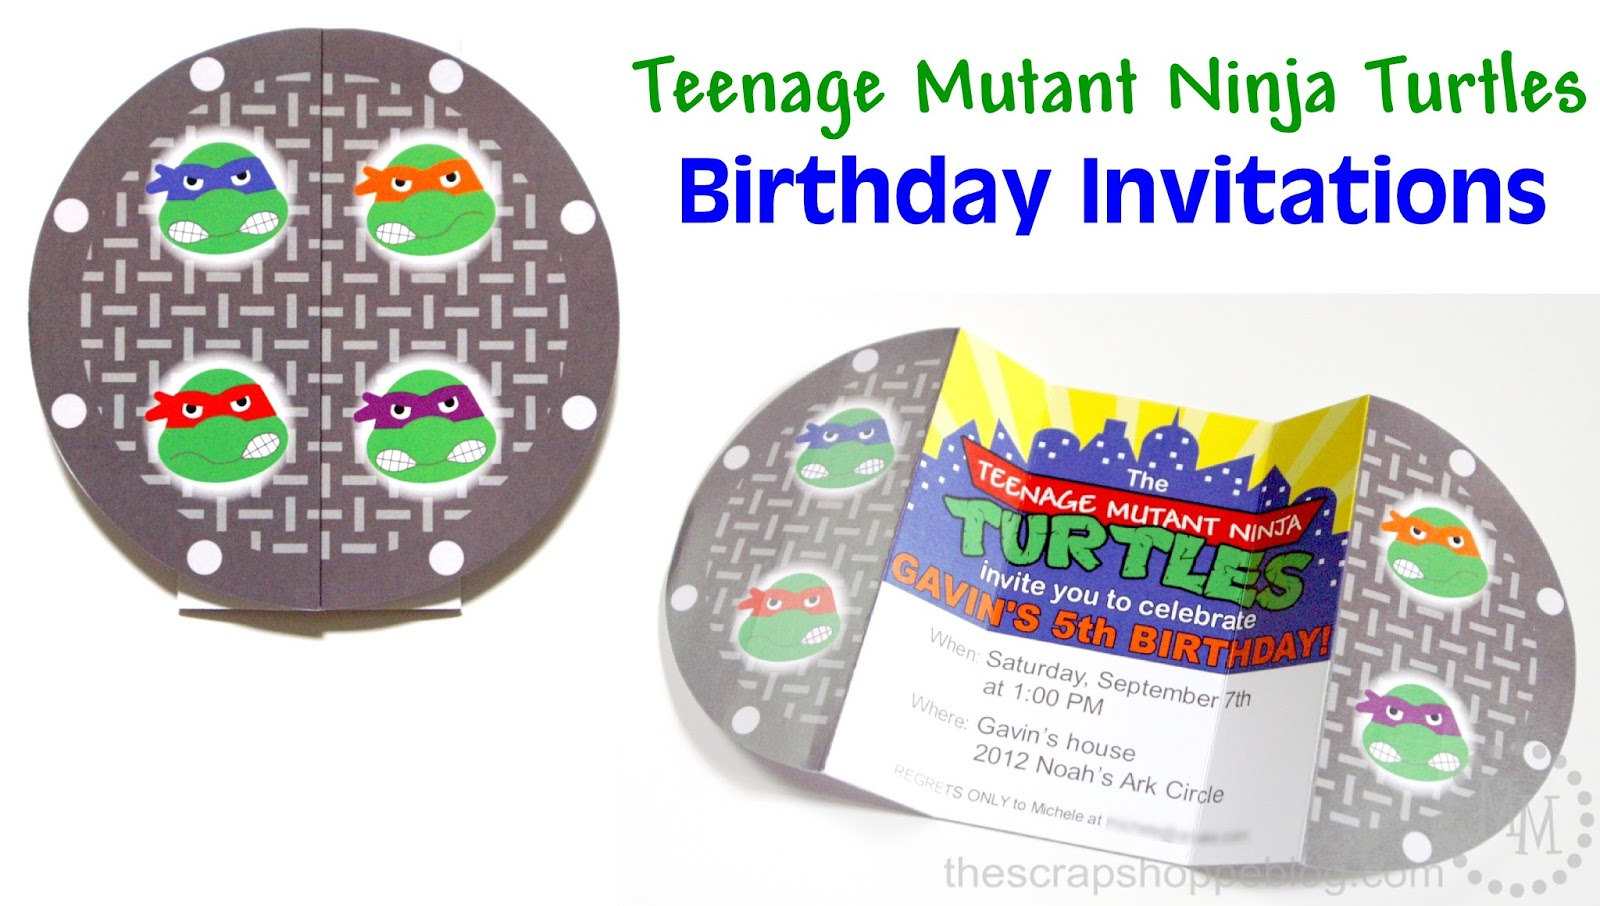 Teenage Mutant Ninja Turtle Birthday Invitations